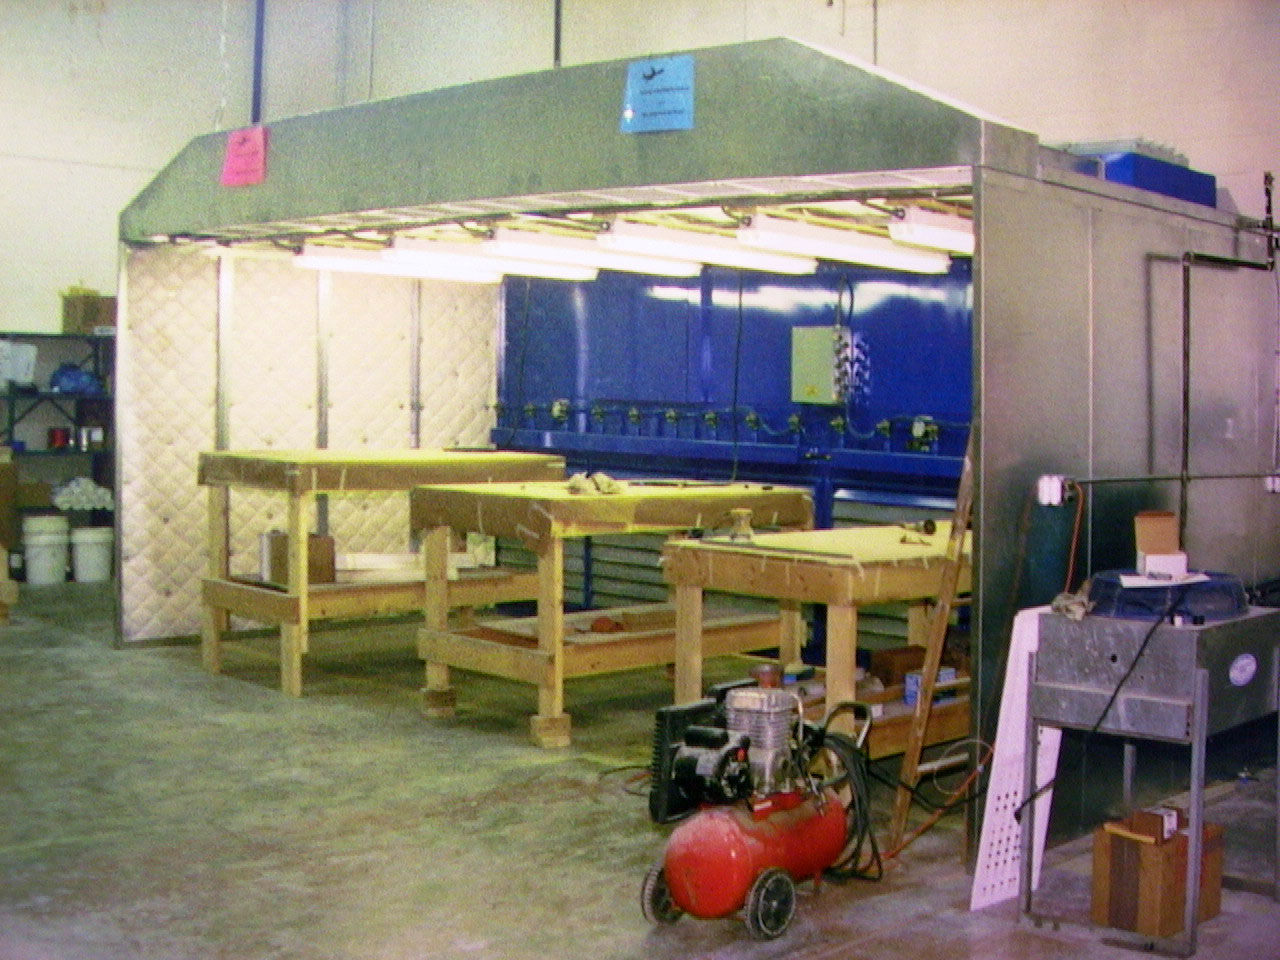 Industrial environmental dust and fume  collection booths for safe air in factories